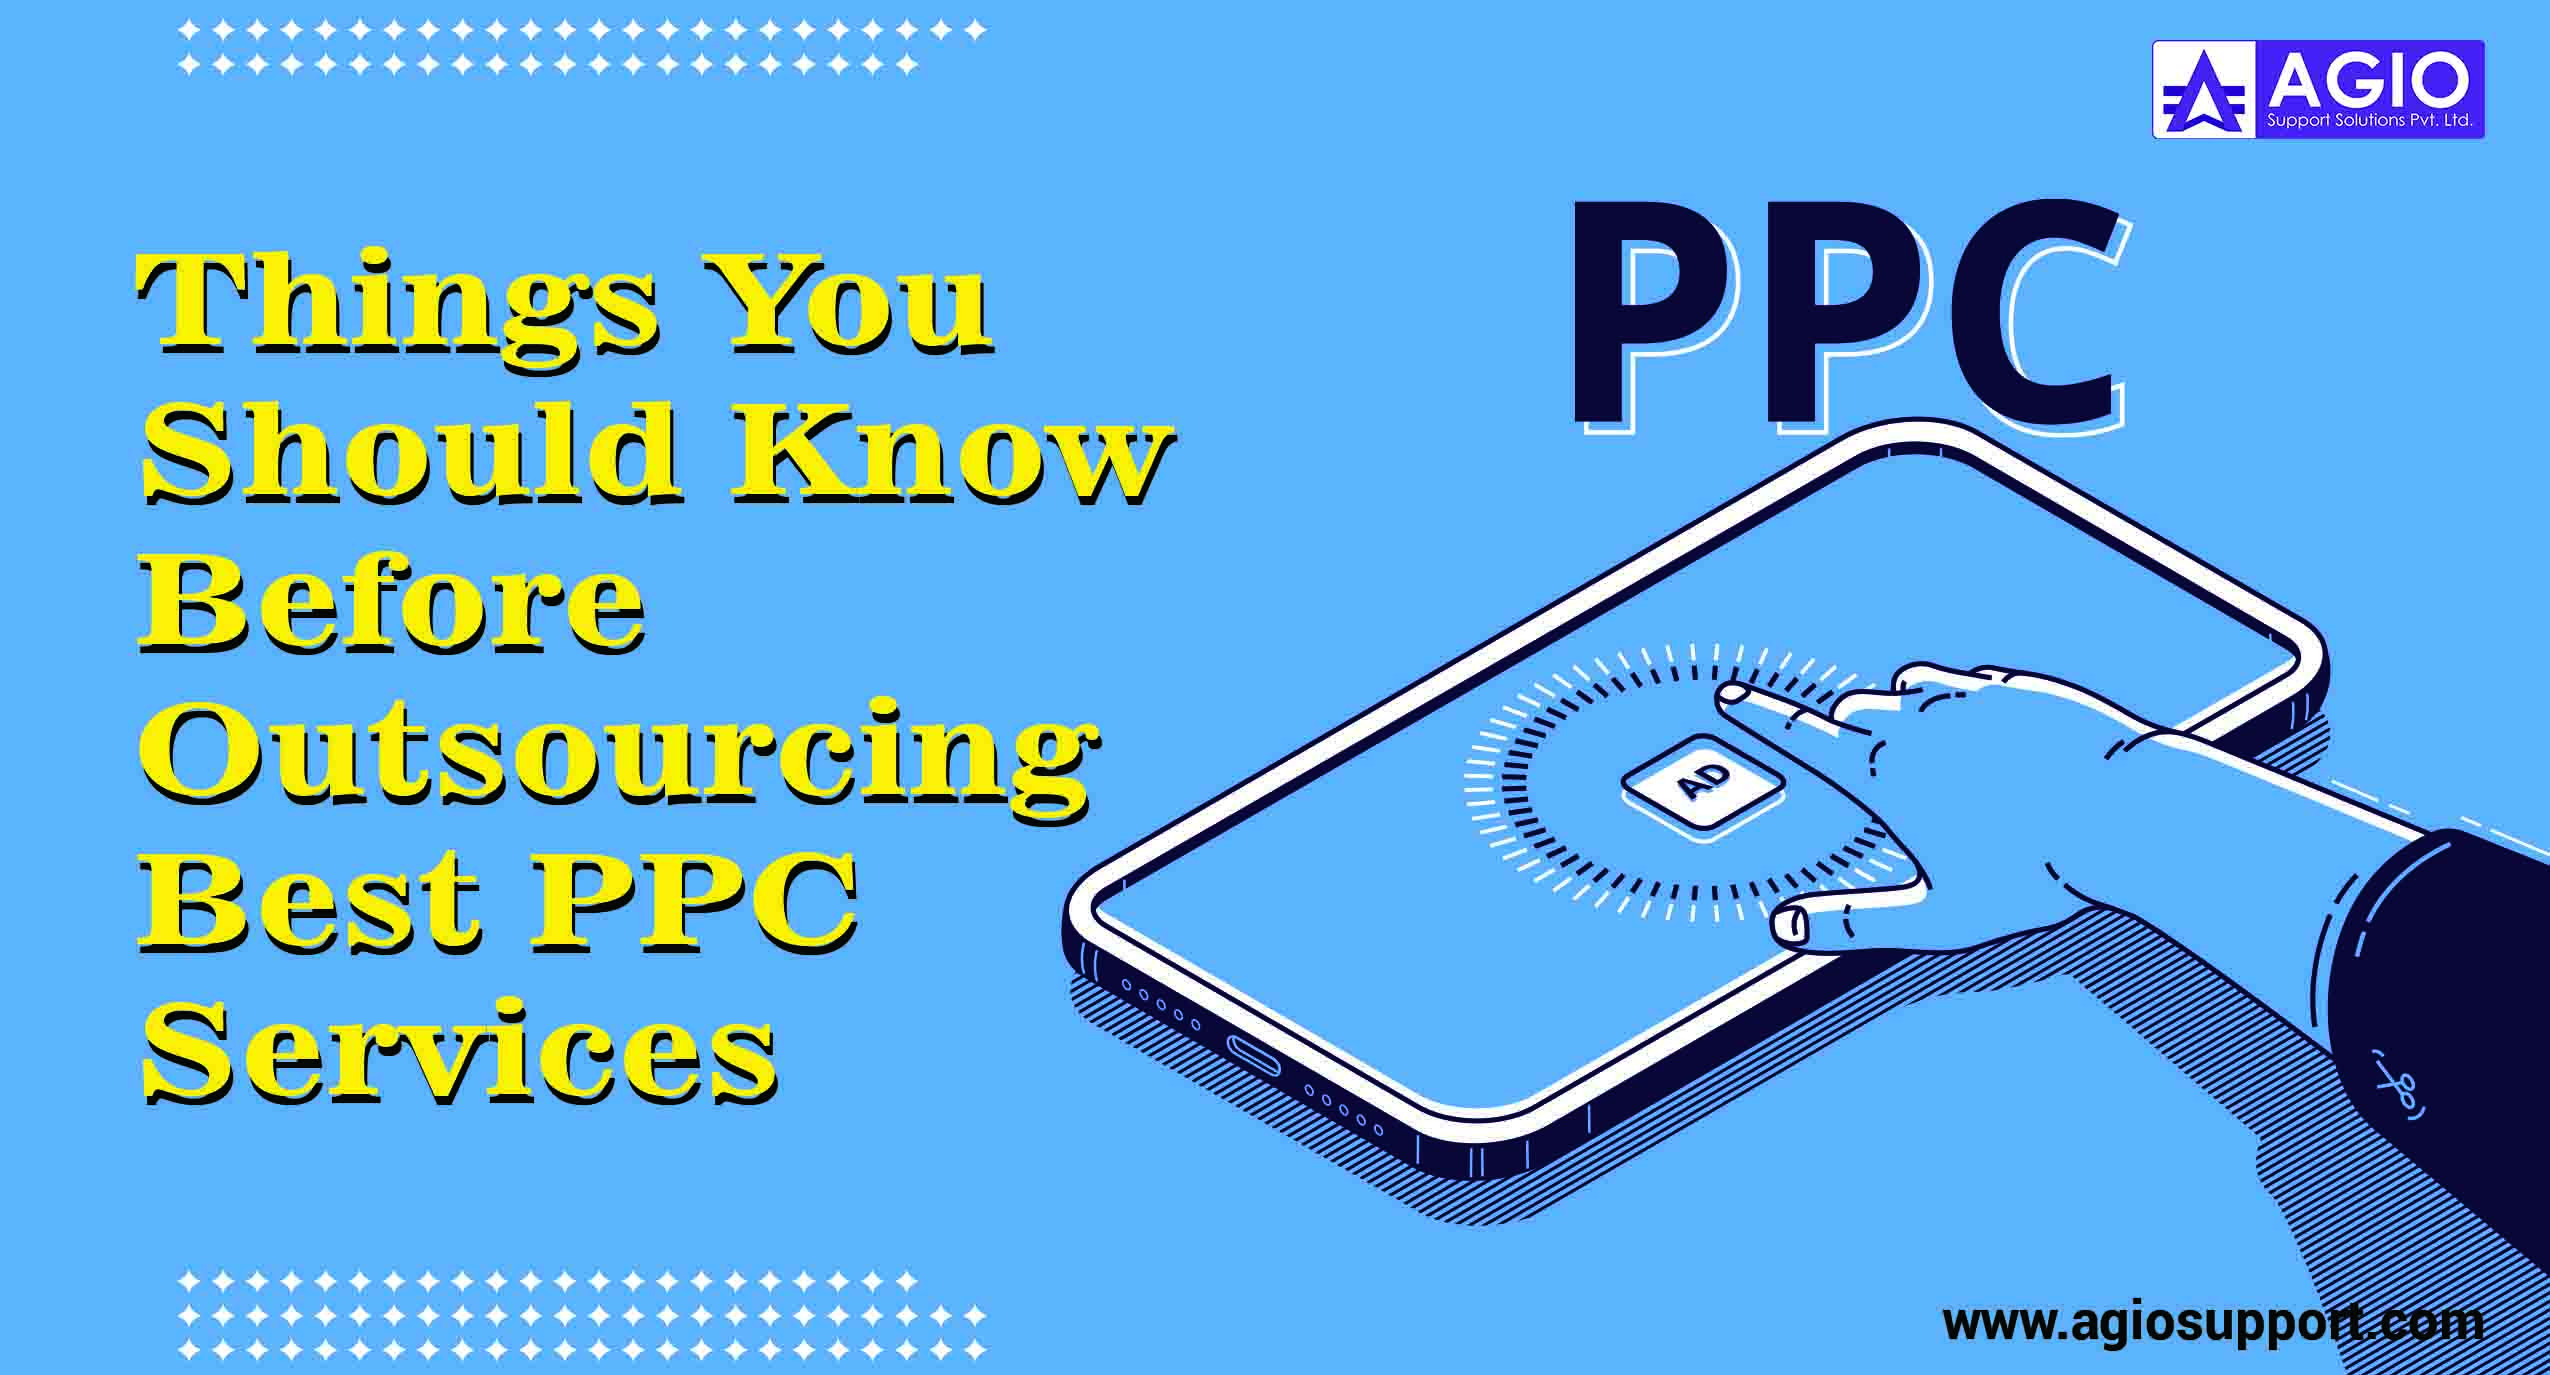 Outsourcing Best PPC Services